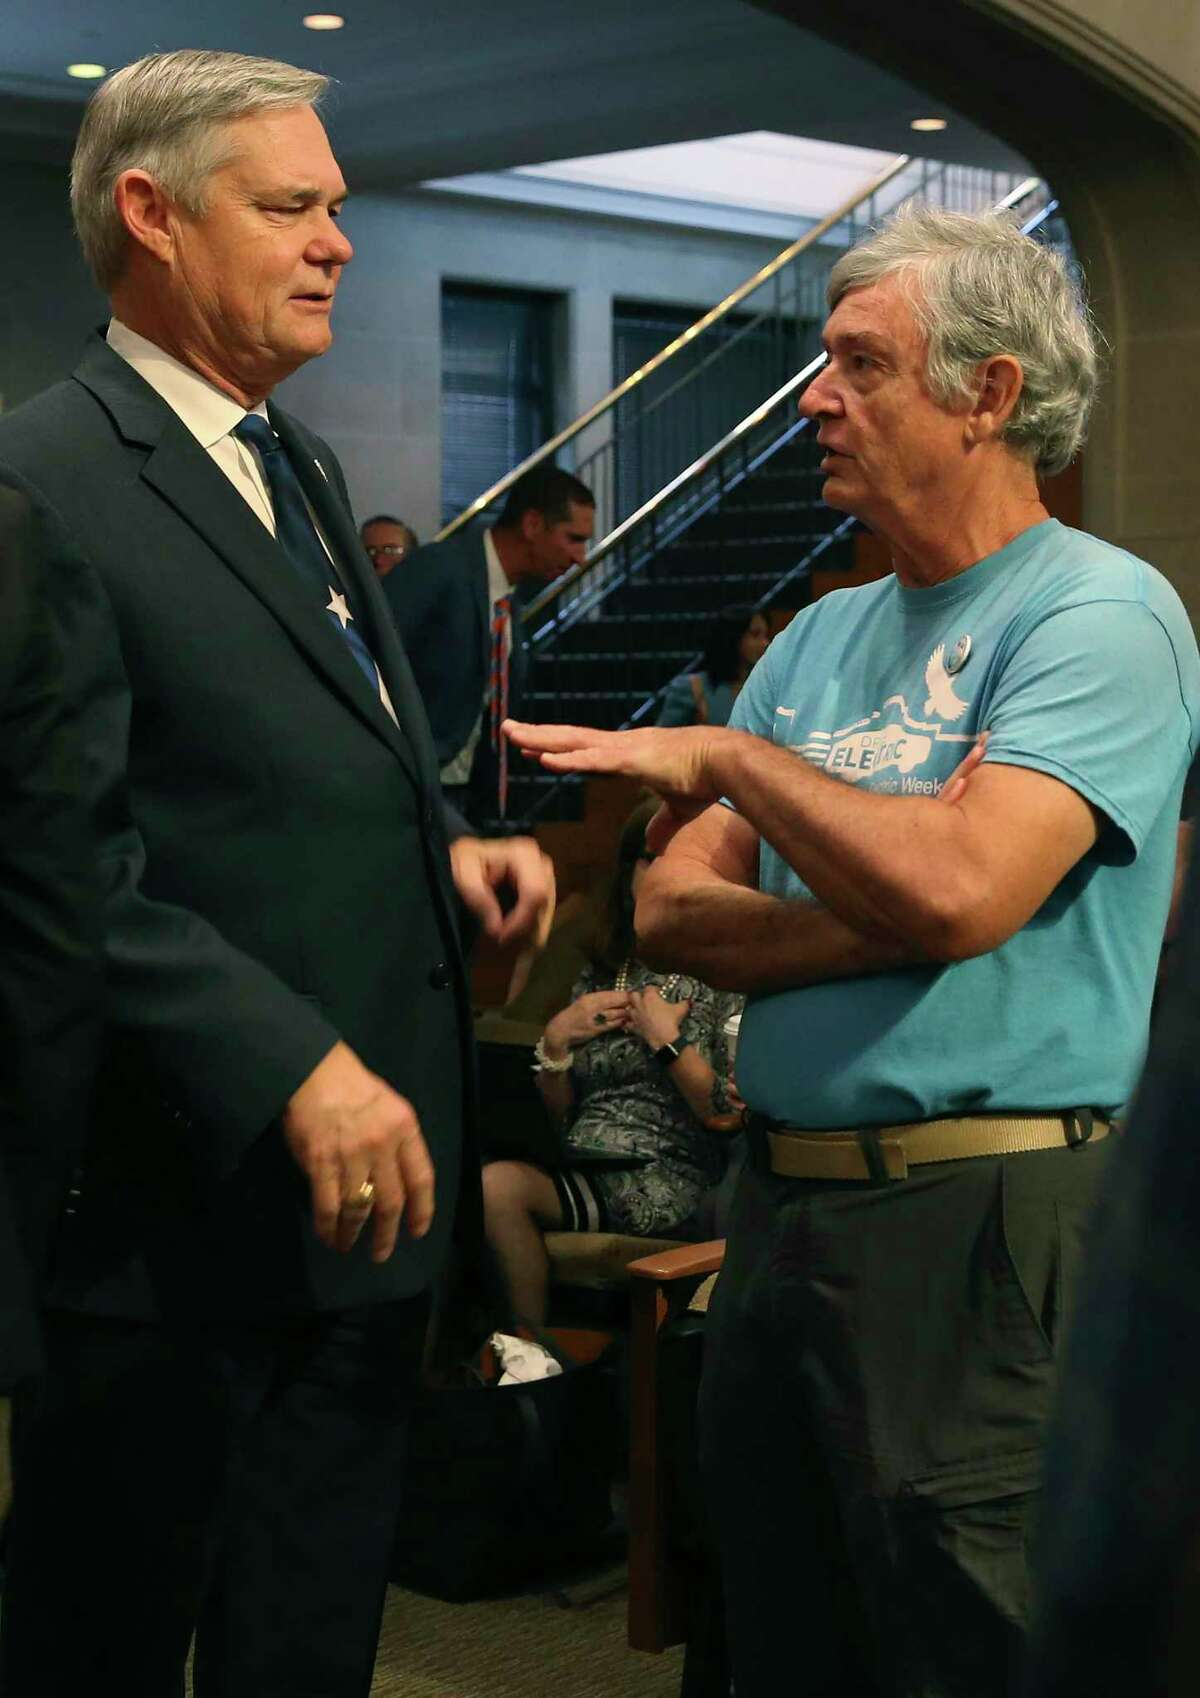 Climate Action and Adaptation Plan supporter Alan Montemayor, right, speaks with San Antonio City Council District 10 member Clayton Perry before the start of the council's regular meeting, Thursday, Oct. 17, 2019. The council voted 10-1 to pass the plan. Perry was the lone vote against it.